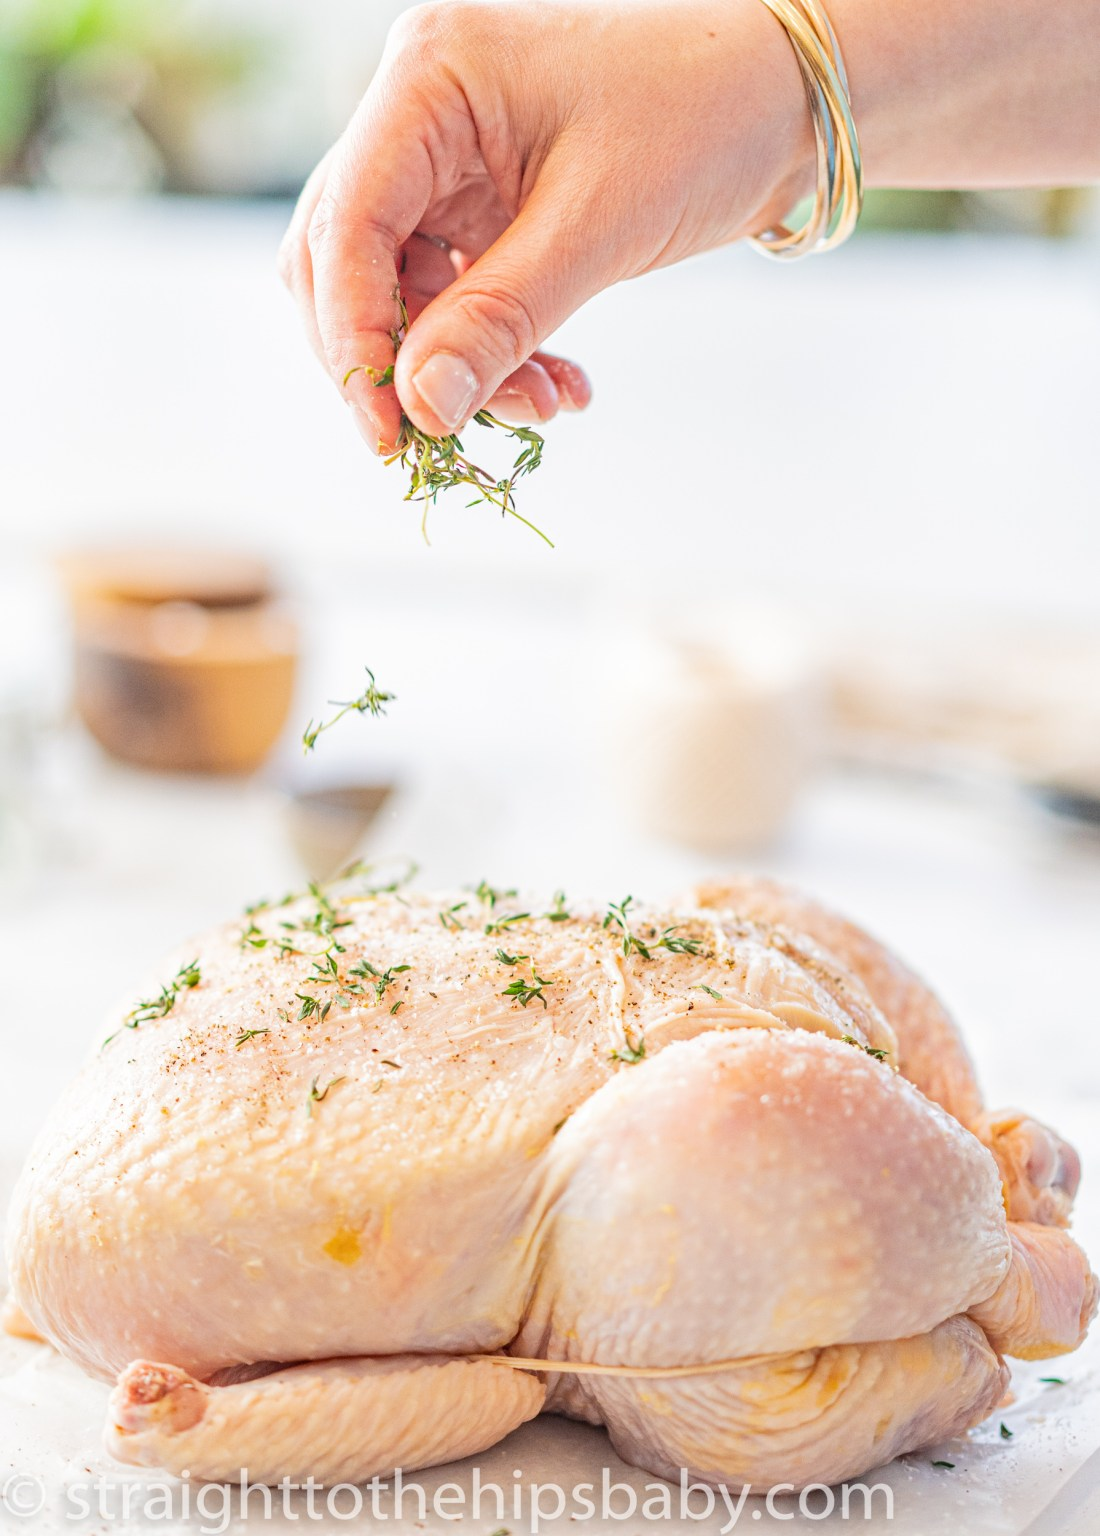 sprinkling fresh thyme leaves on top of a trussed whole raw chicken before roasting